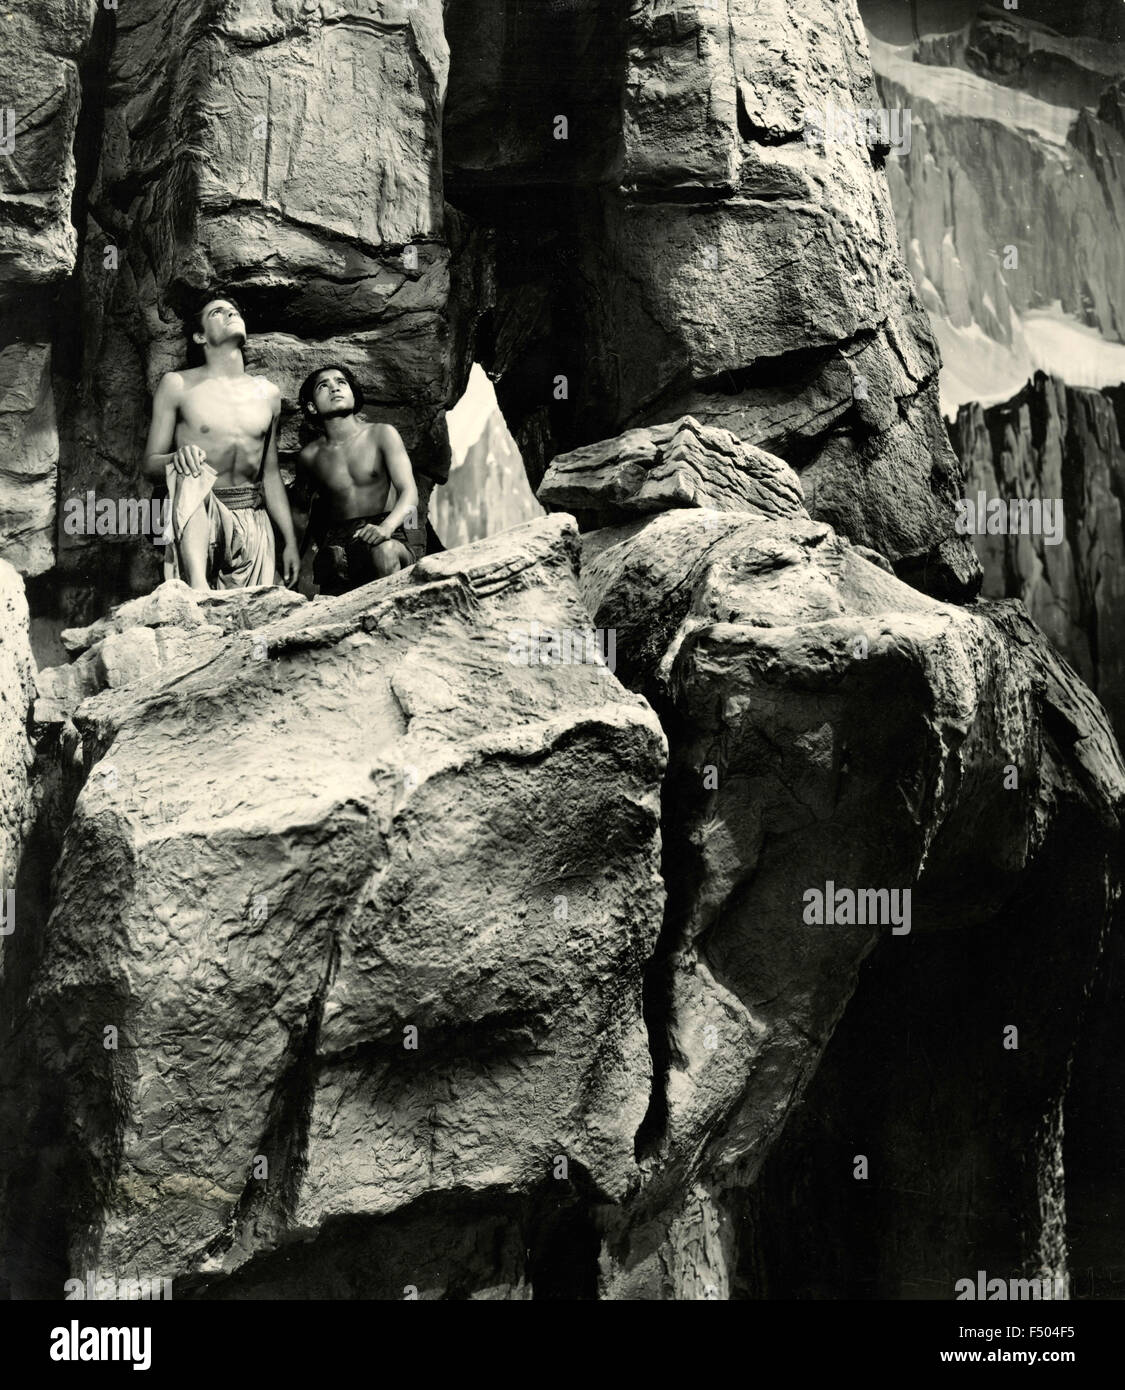 The actor Sabu in a scene from the film 'The Thief of Bagdad', 1940 - Stock Image